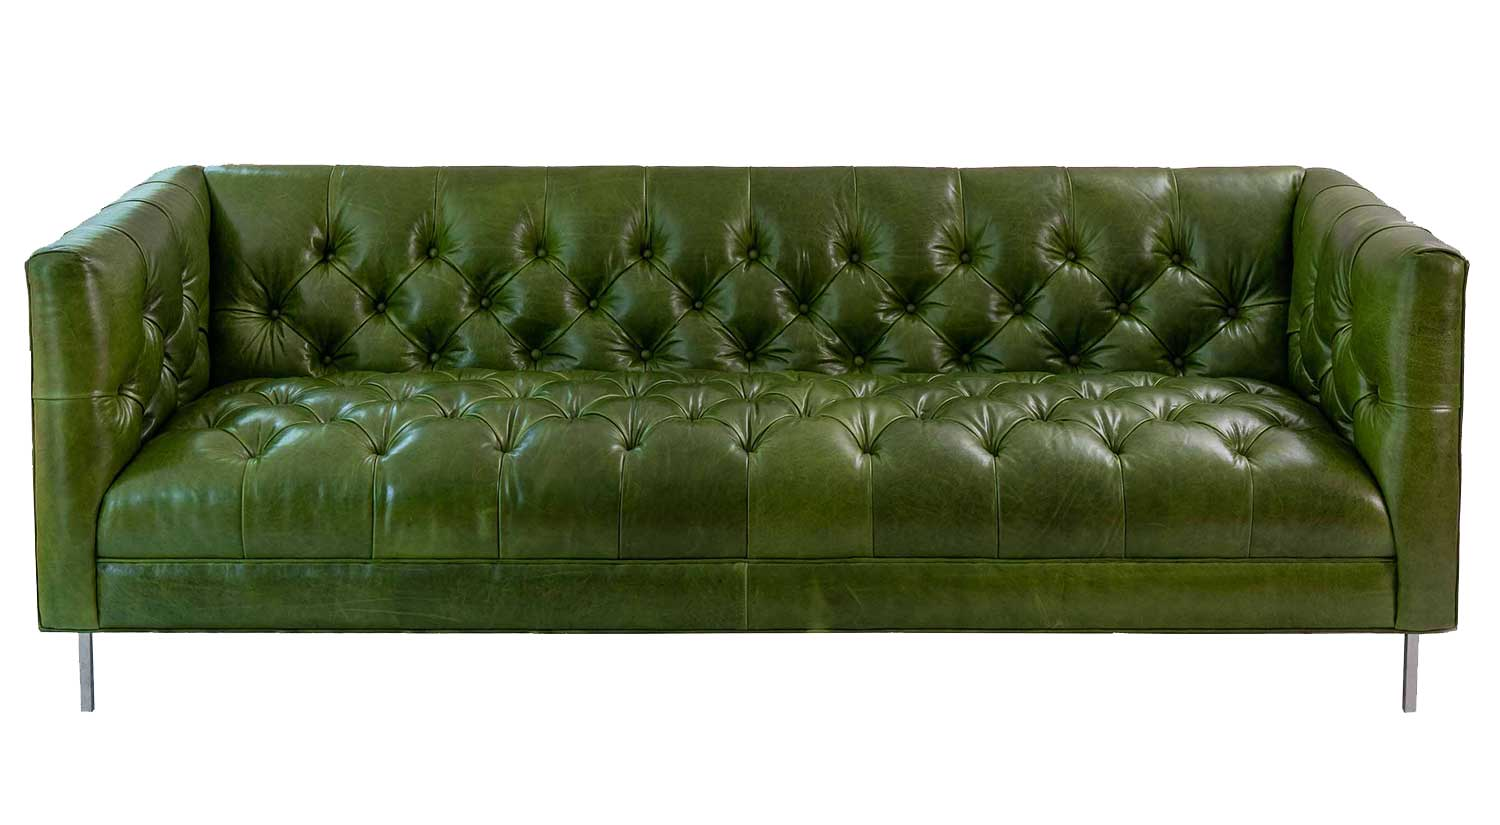 harvard chair for sale cheap gaming circle furniture sofa tufted sofas modern styles living loveseats